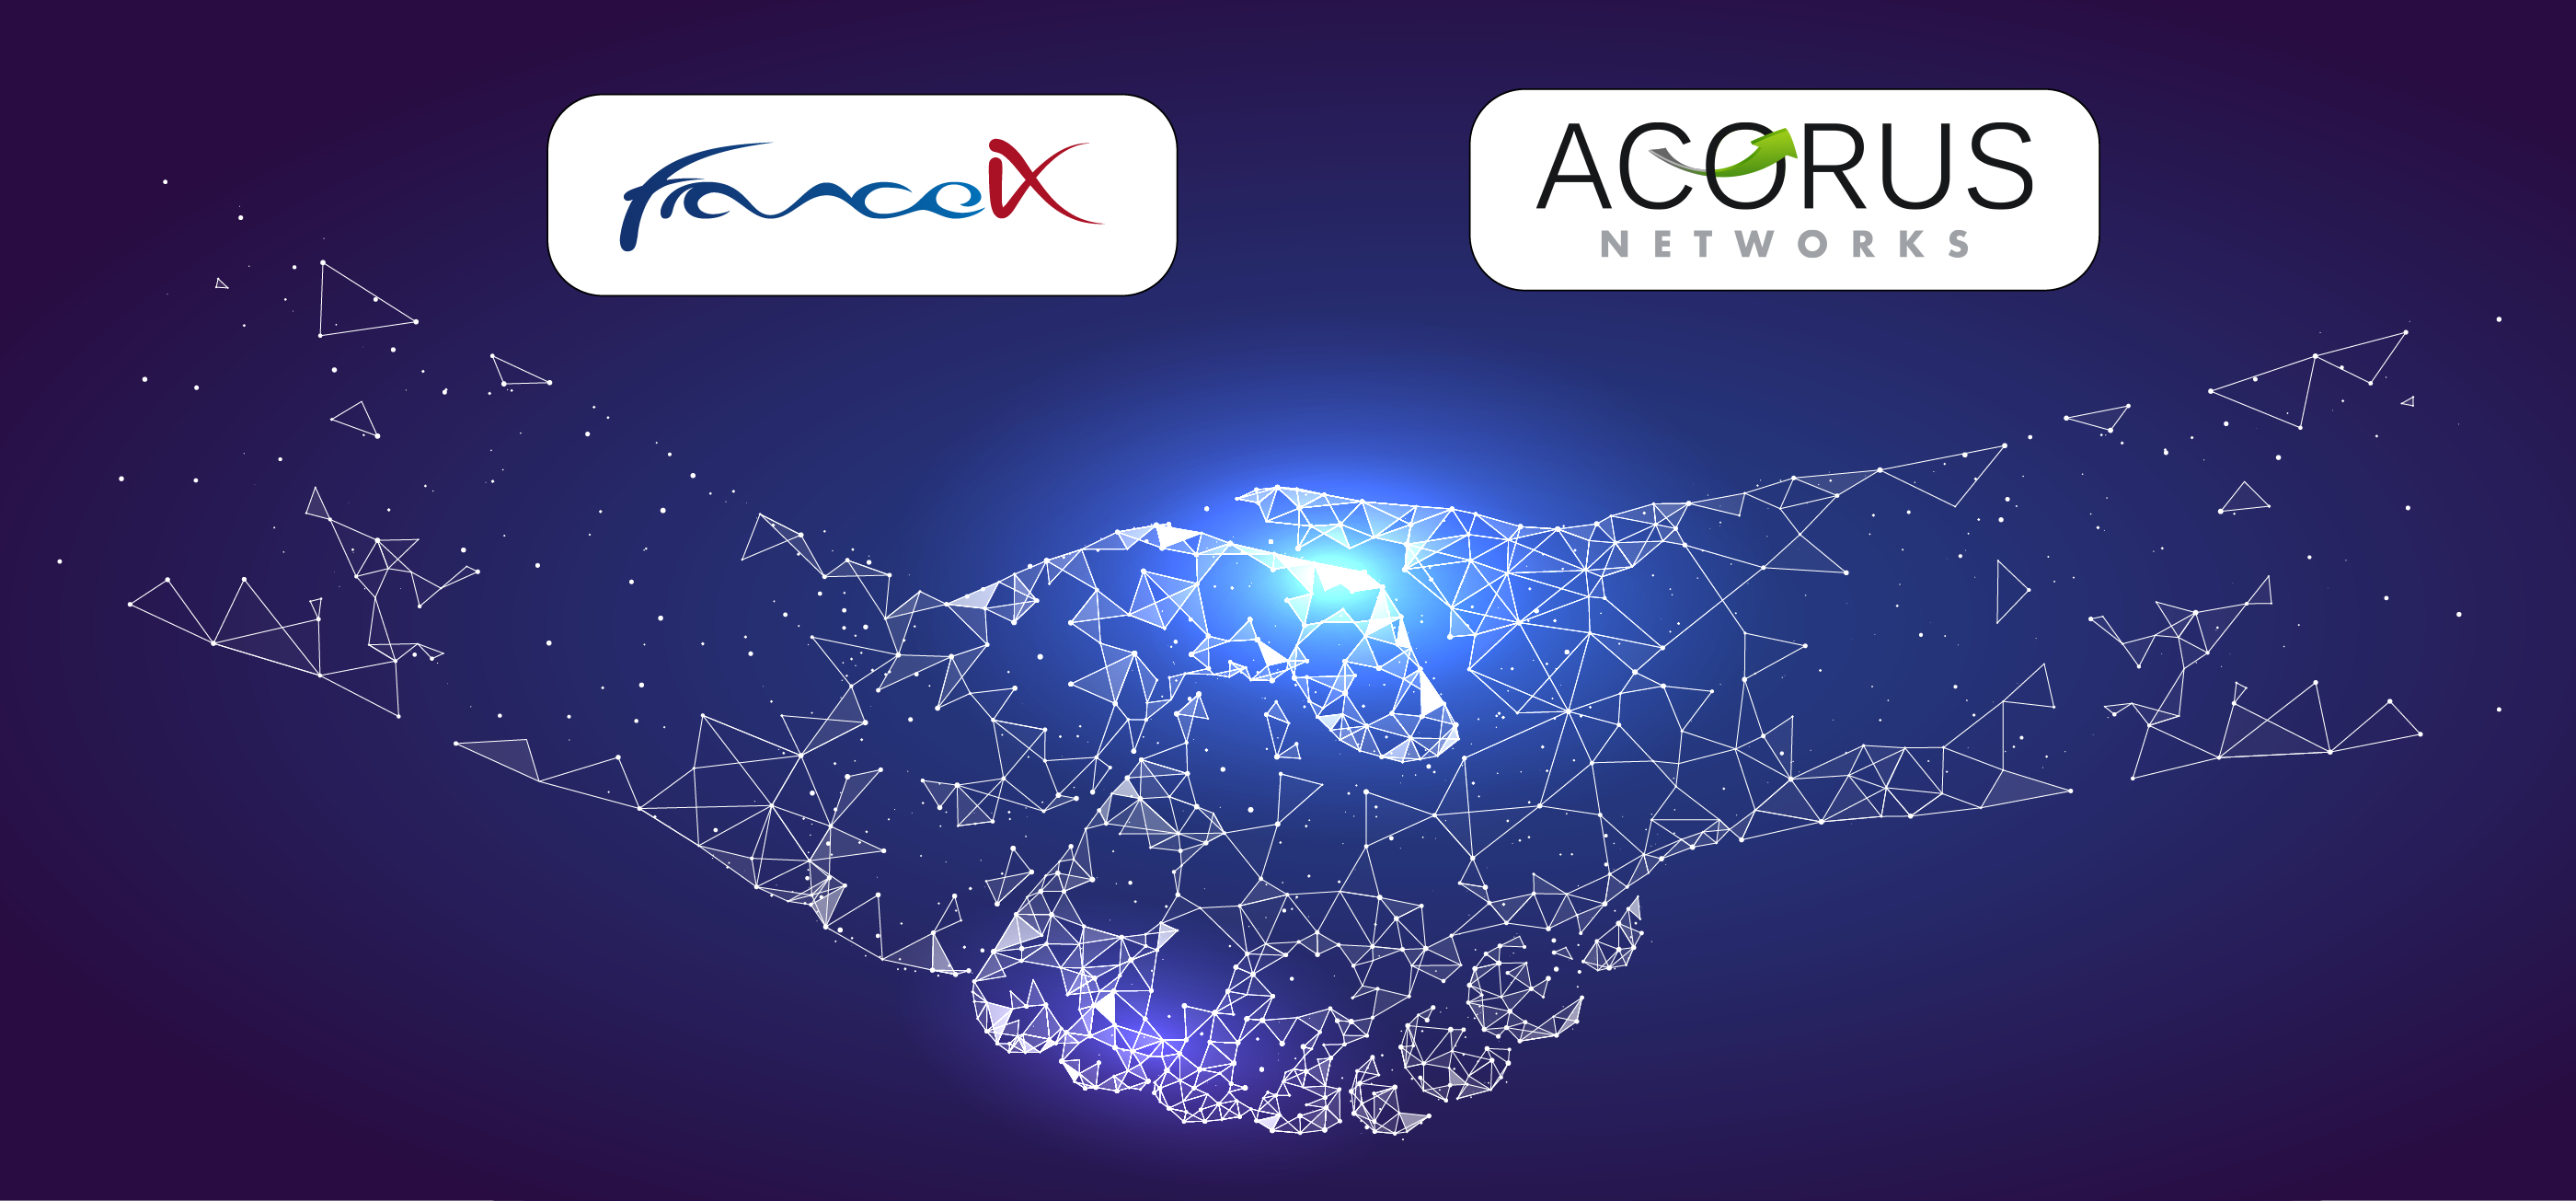 France-IX and Acorus Networks launch a Strategic Partnership to provide Advanced Cybersecurity Solutions